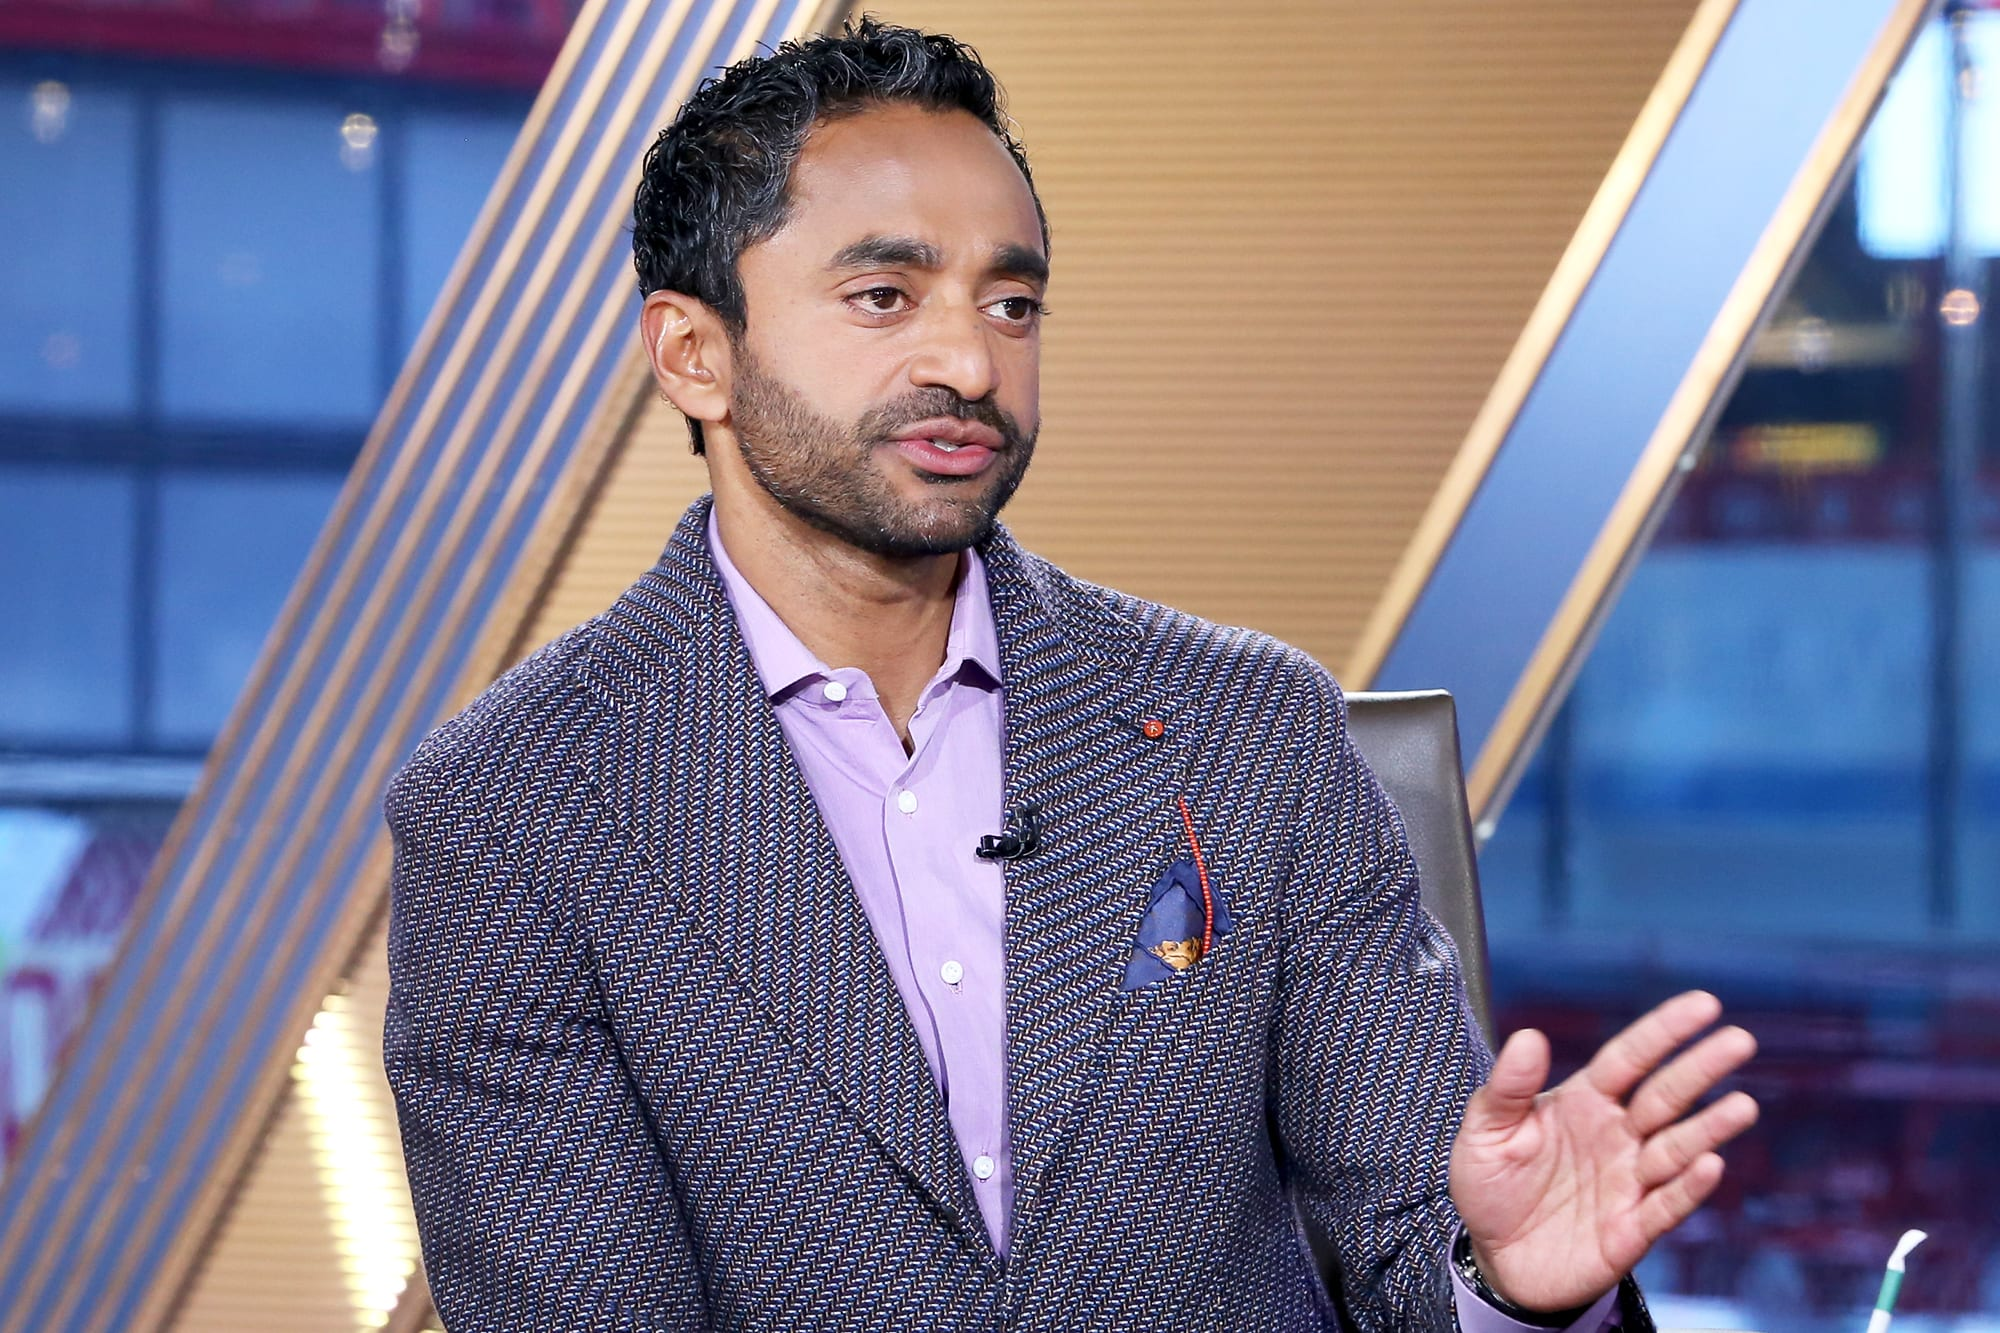 palihapitiya-finds-next-'10x-idea'-with-$4.8-billion-spac-deal-for-real-estate-start-up-opendoor